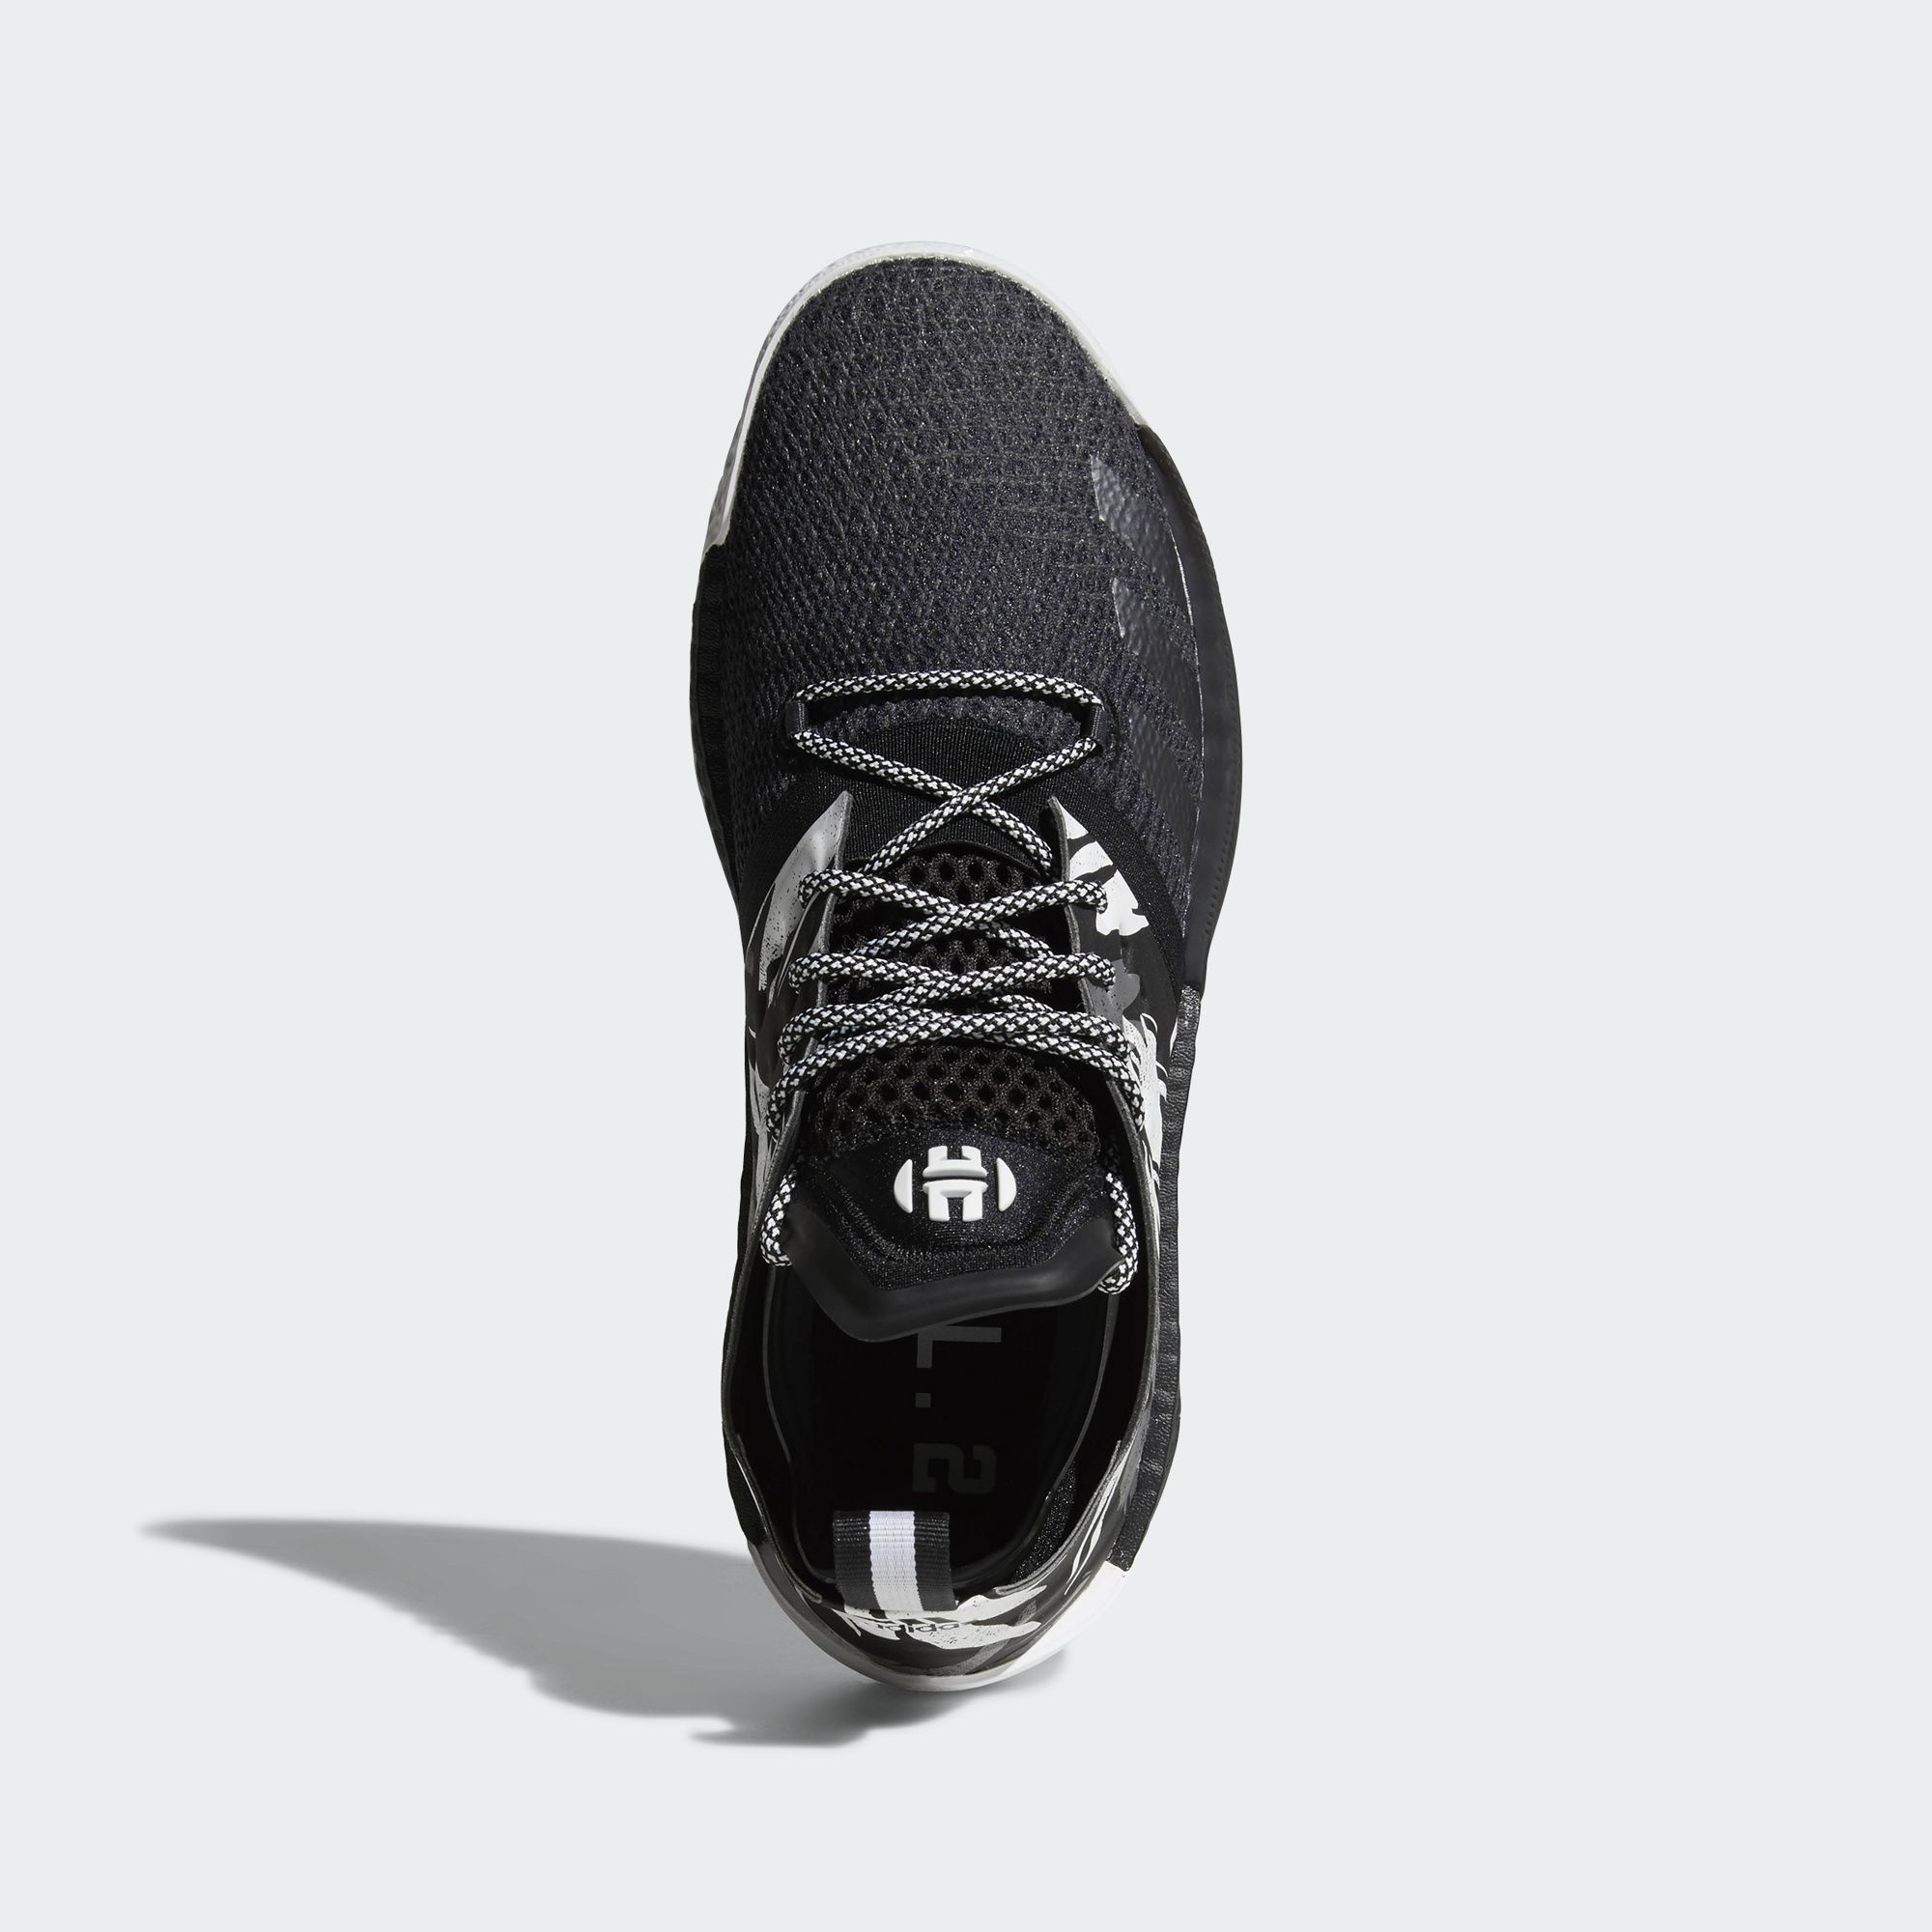 9bcdf51ebdef adidas harden vol 2 black white 4 - WearTesters